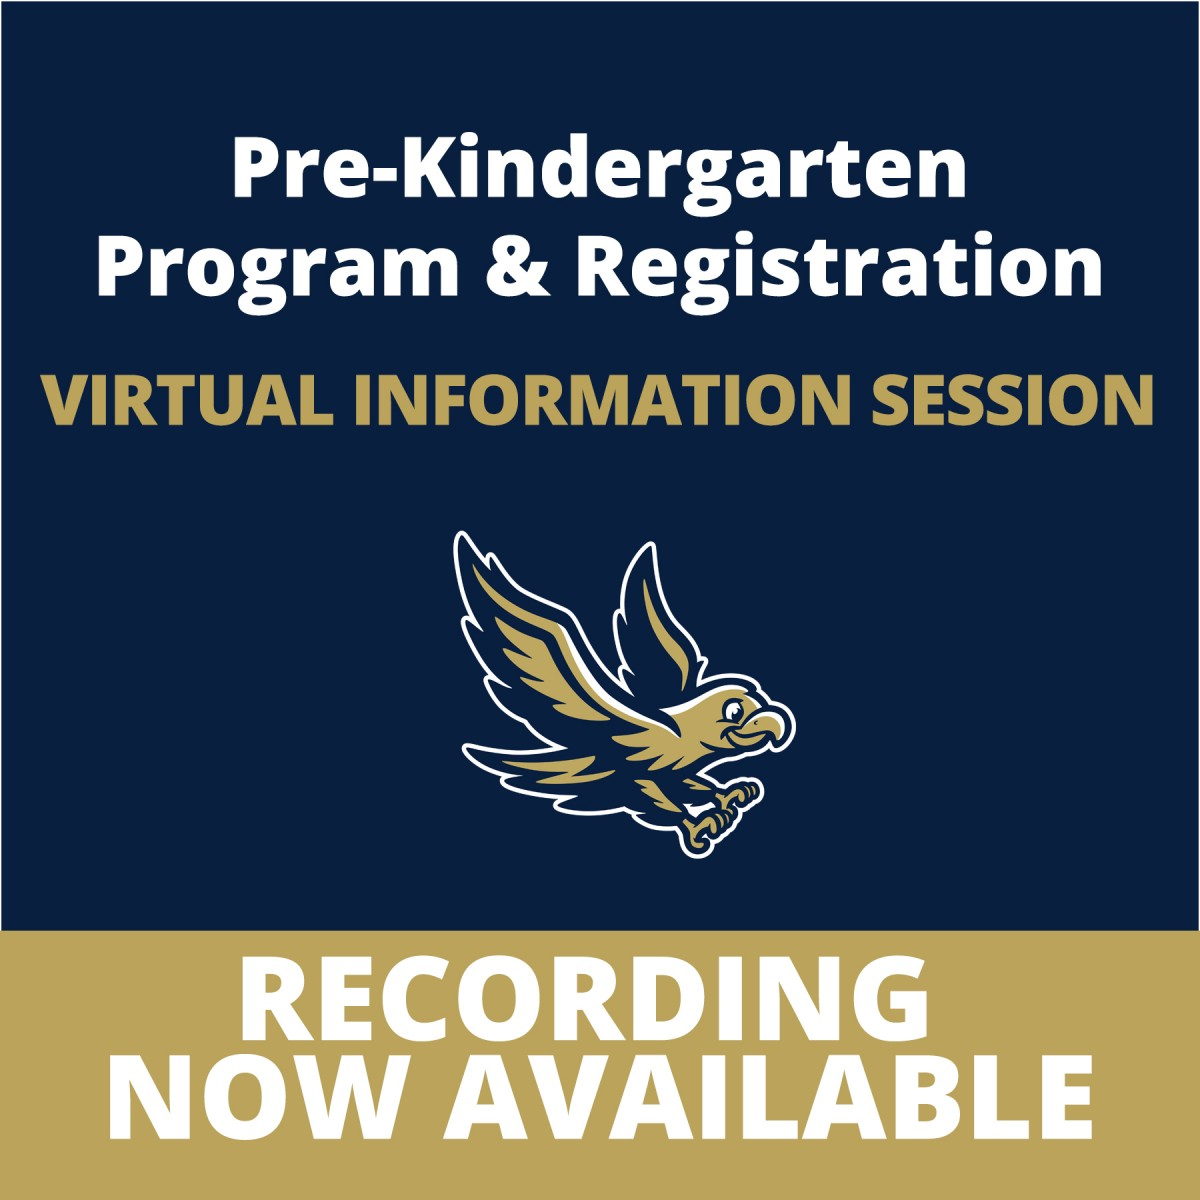 Thumbnail for NECSD Pre-Kindergarten Virtual Information Session Recording